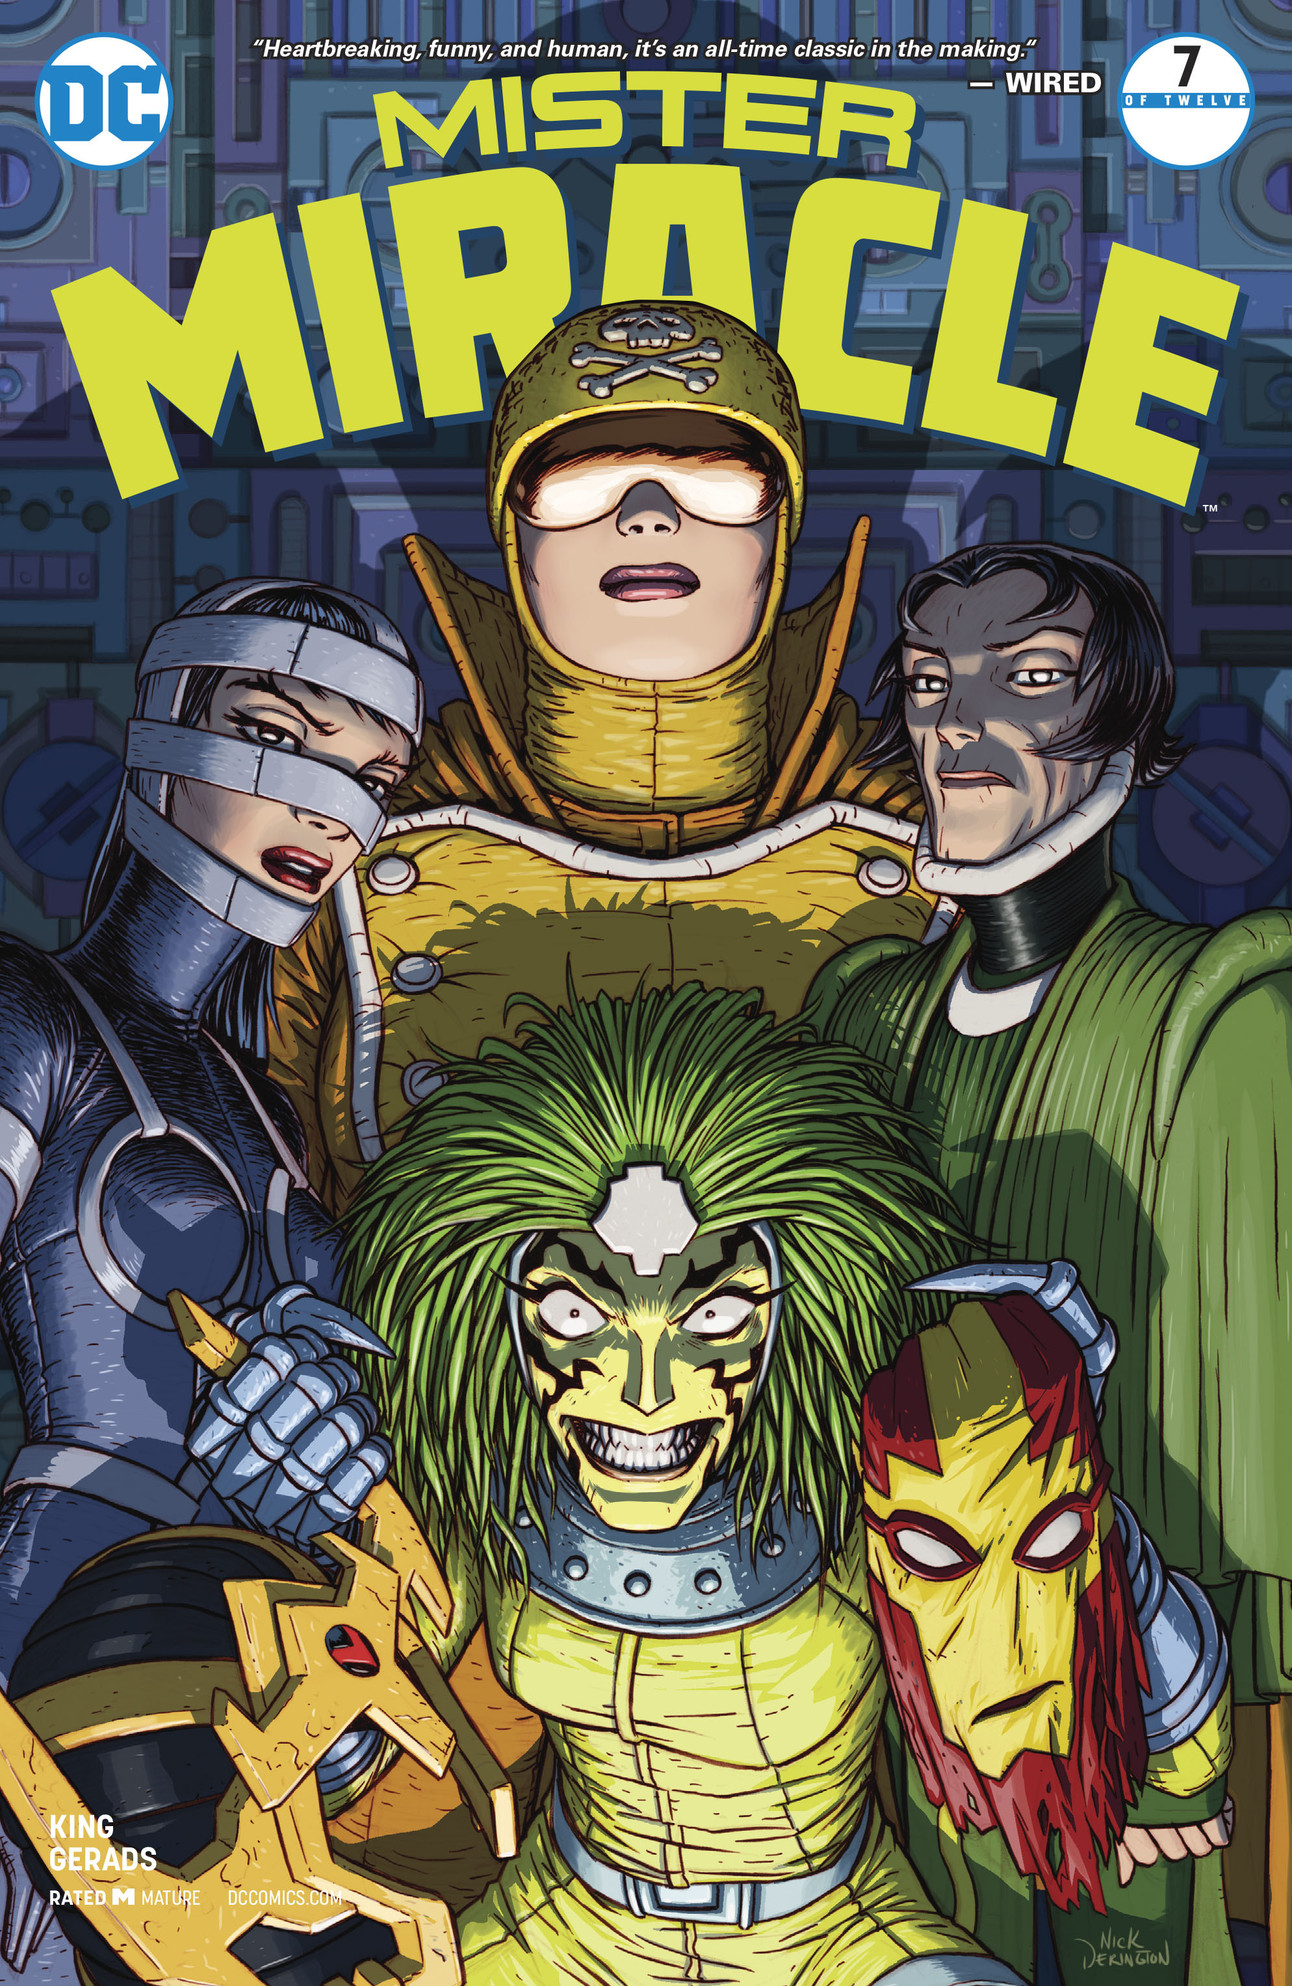 dc_mister_miracle_7_cover.jpg